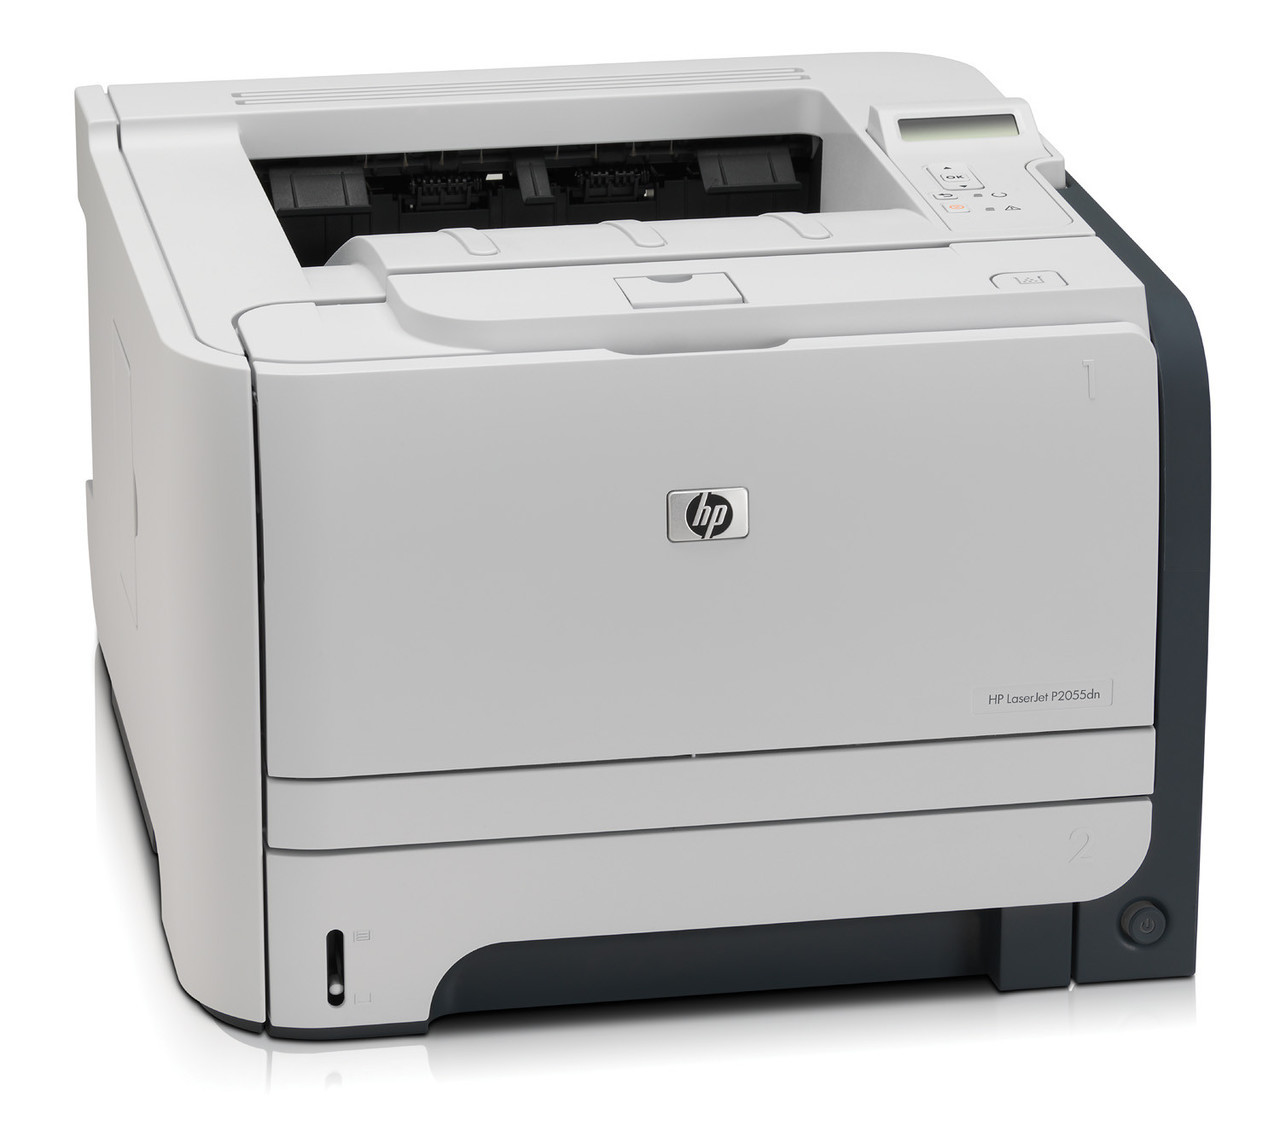 HP Laserjet P2055D - CE457AR - 2035 HP Printer for sale